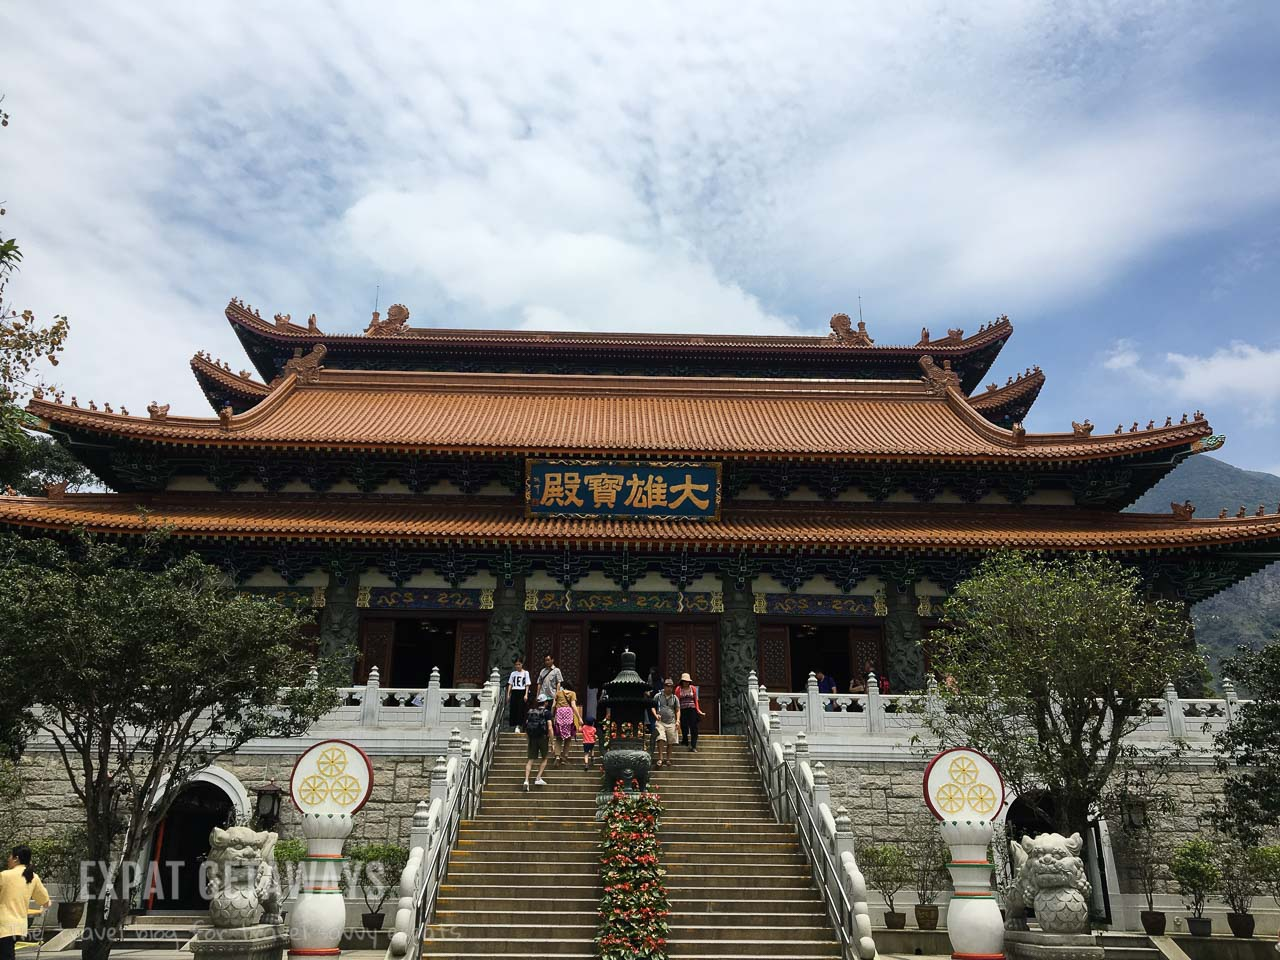 Next to the Big Buddha you will find the spectacular Po Lin Monastery. A great day trip while you are in Hong Kong.